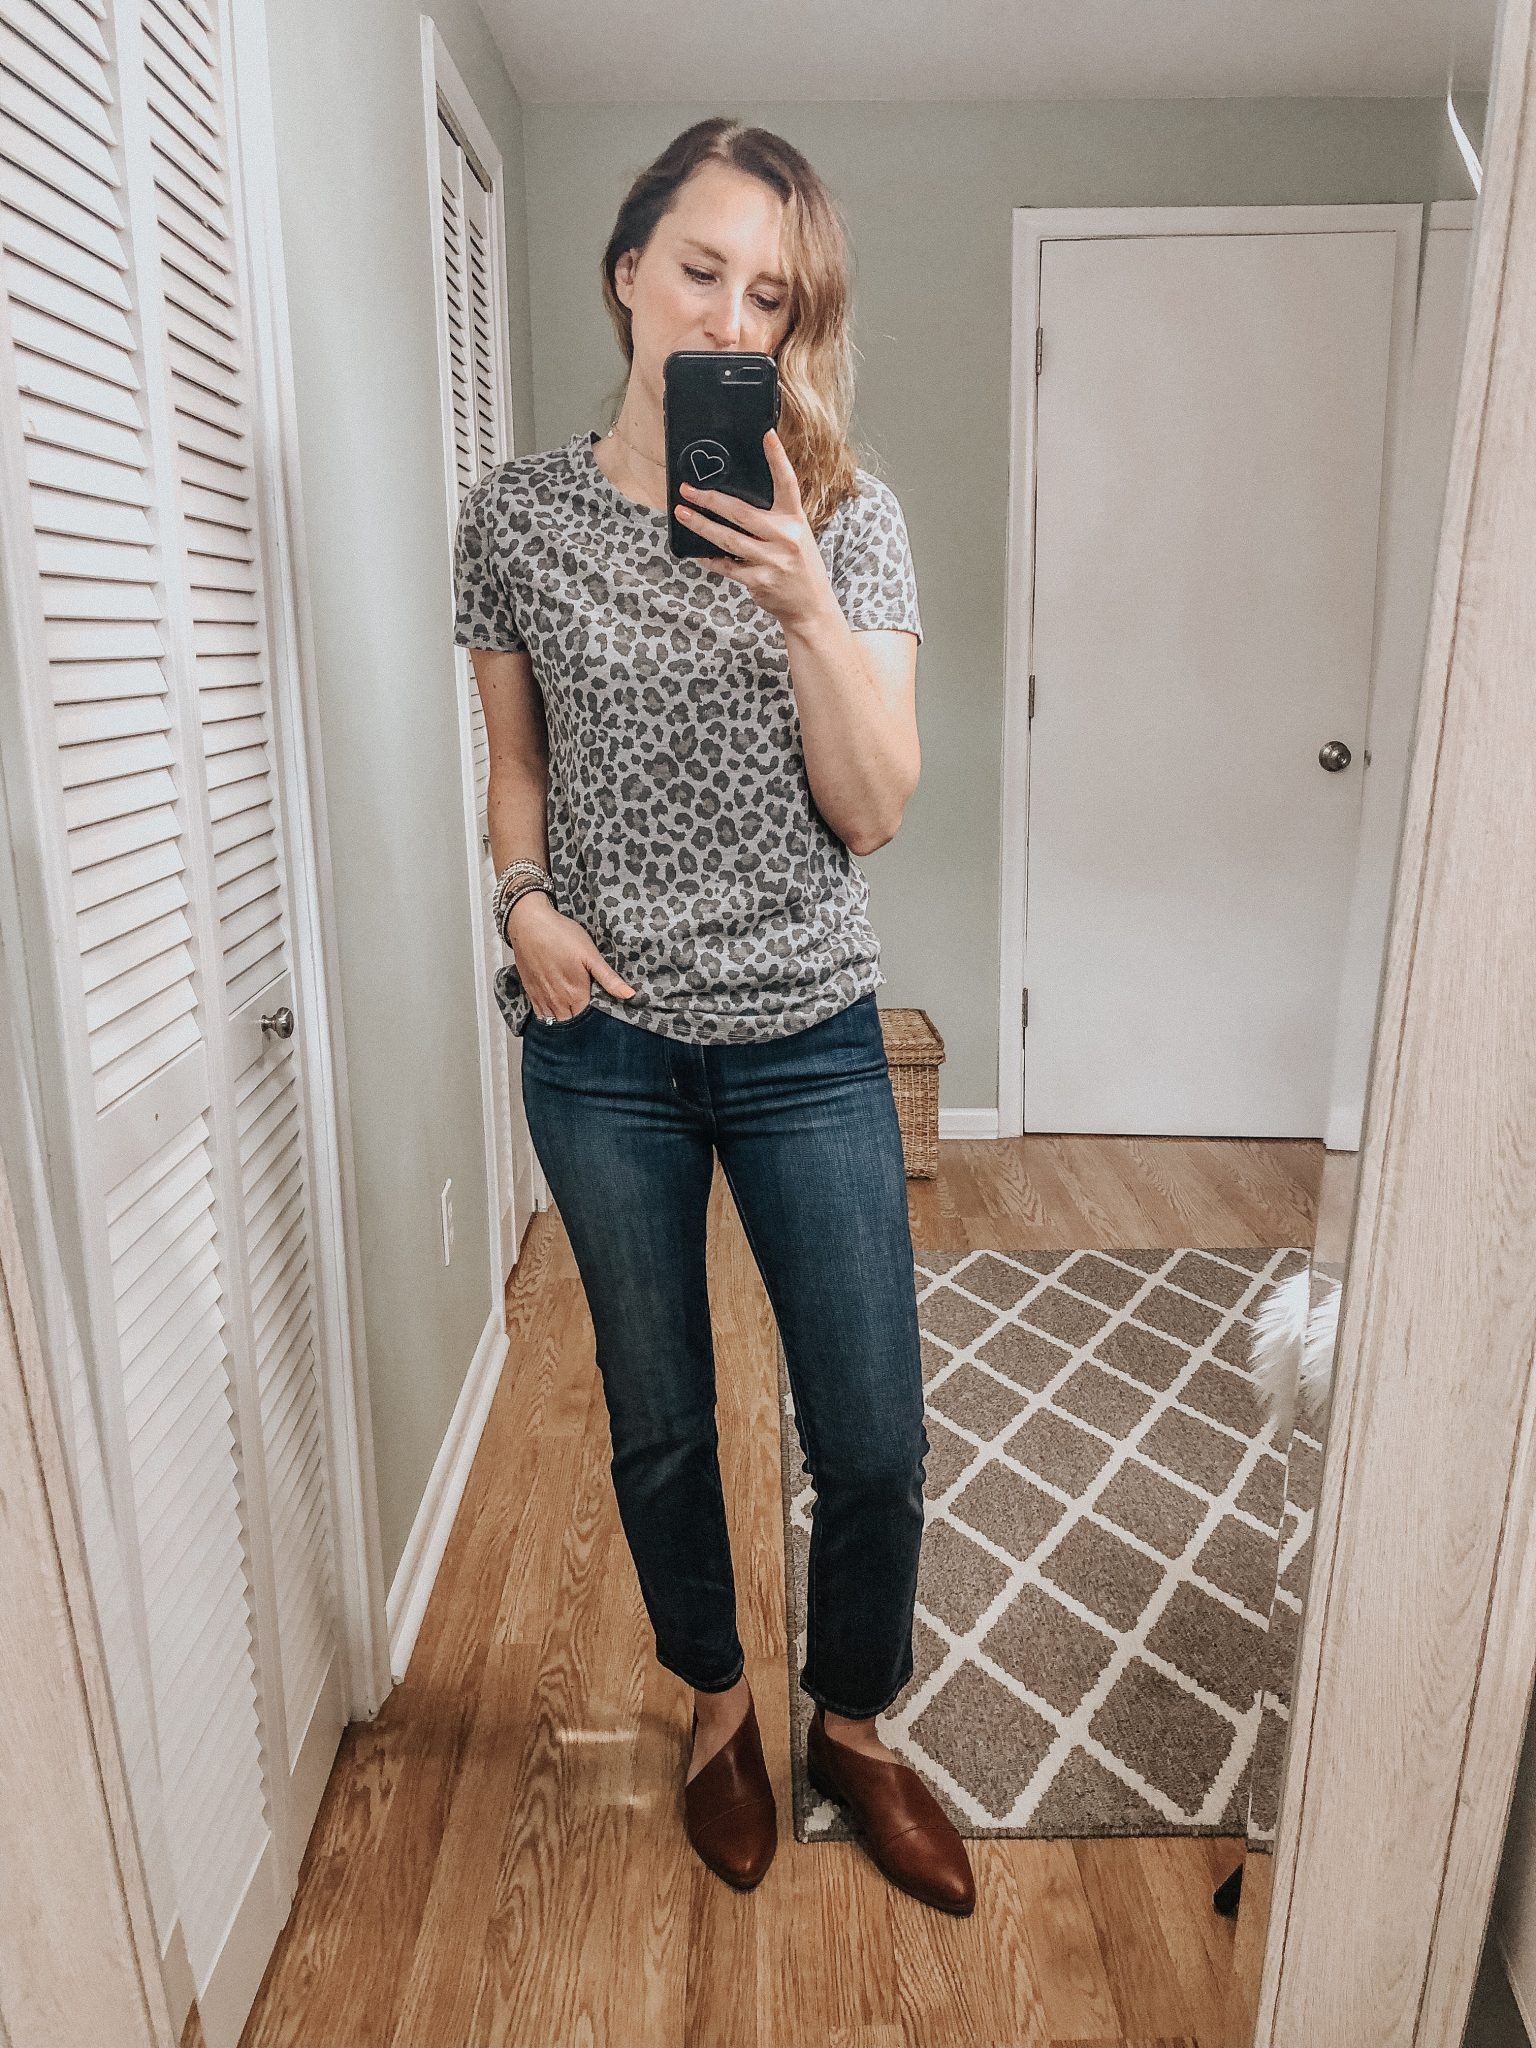 Fall Target Try On | Leopard tee and crop levis with brown booties #fallstyle #targetstyle #targettryon #momstyle